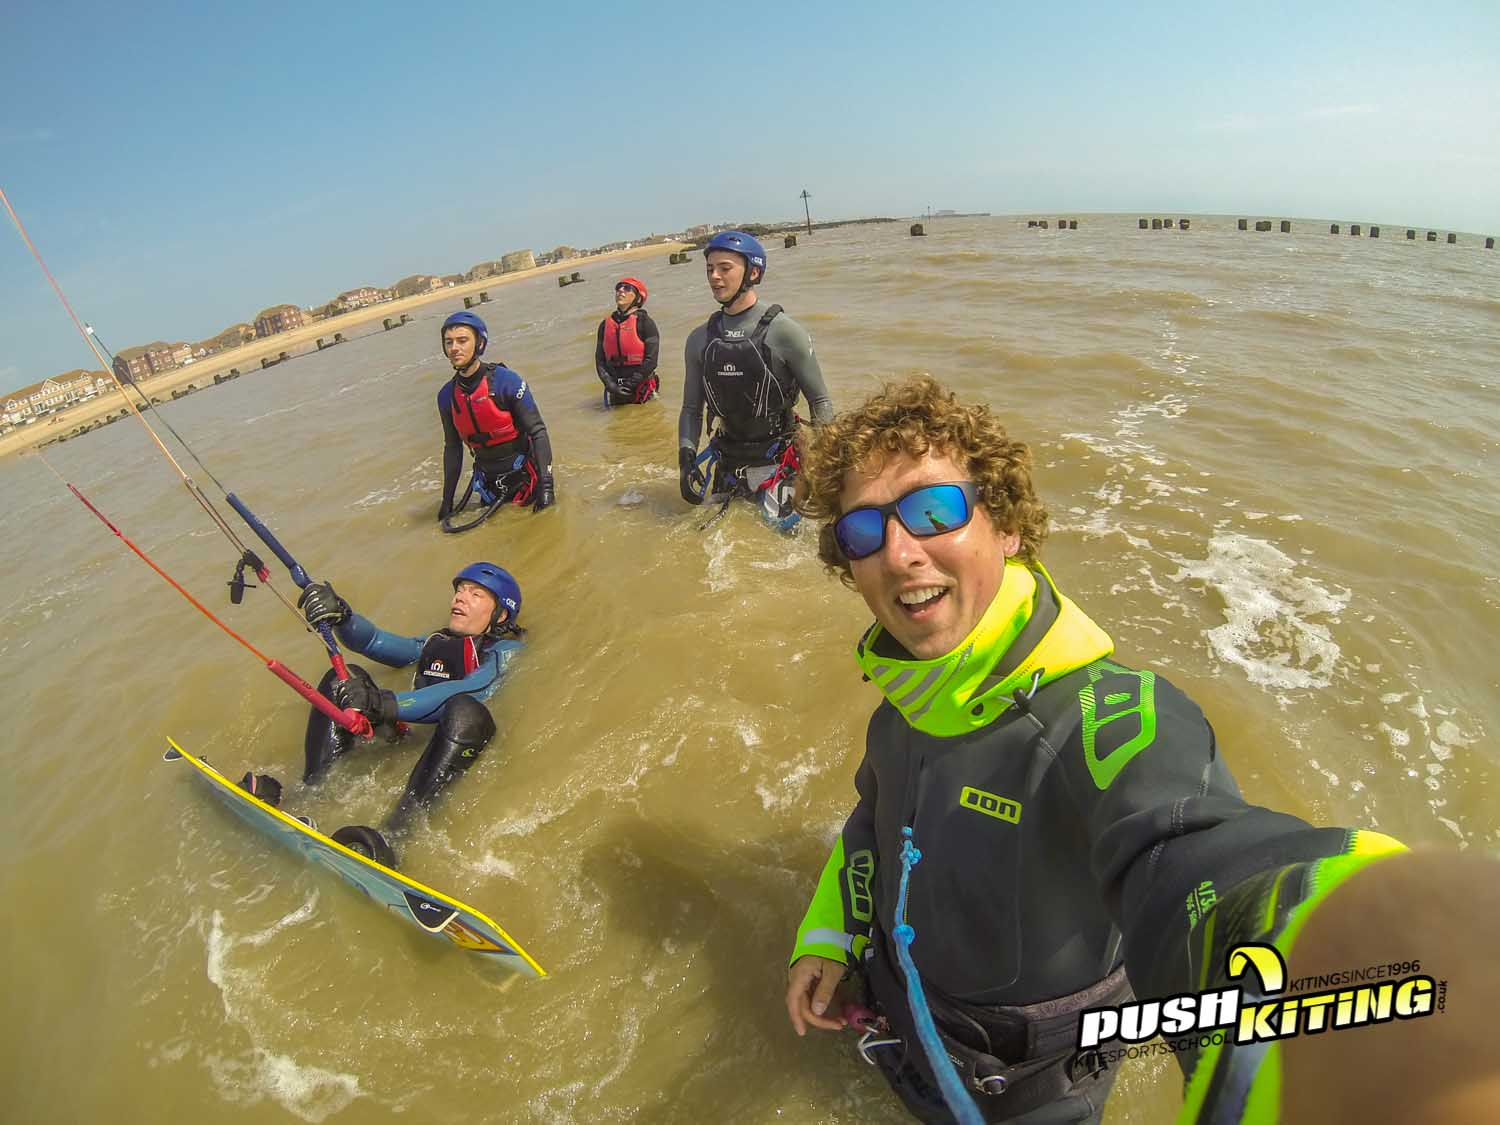 2 Day kitesurfing course September 6th and 7th